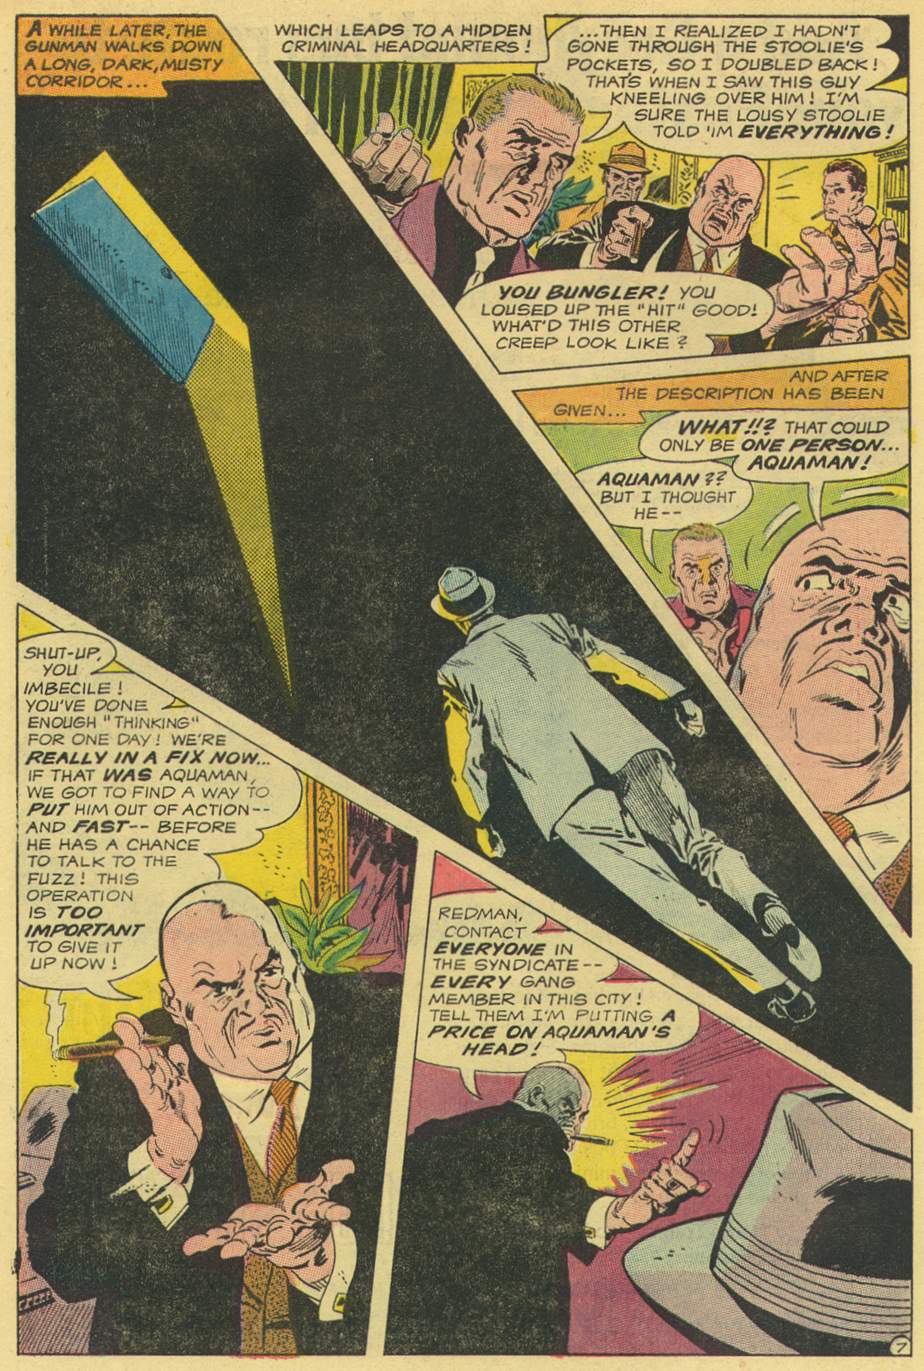 Read online Aquaman (1962) comic -  Issue #44 - 10